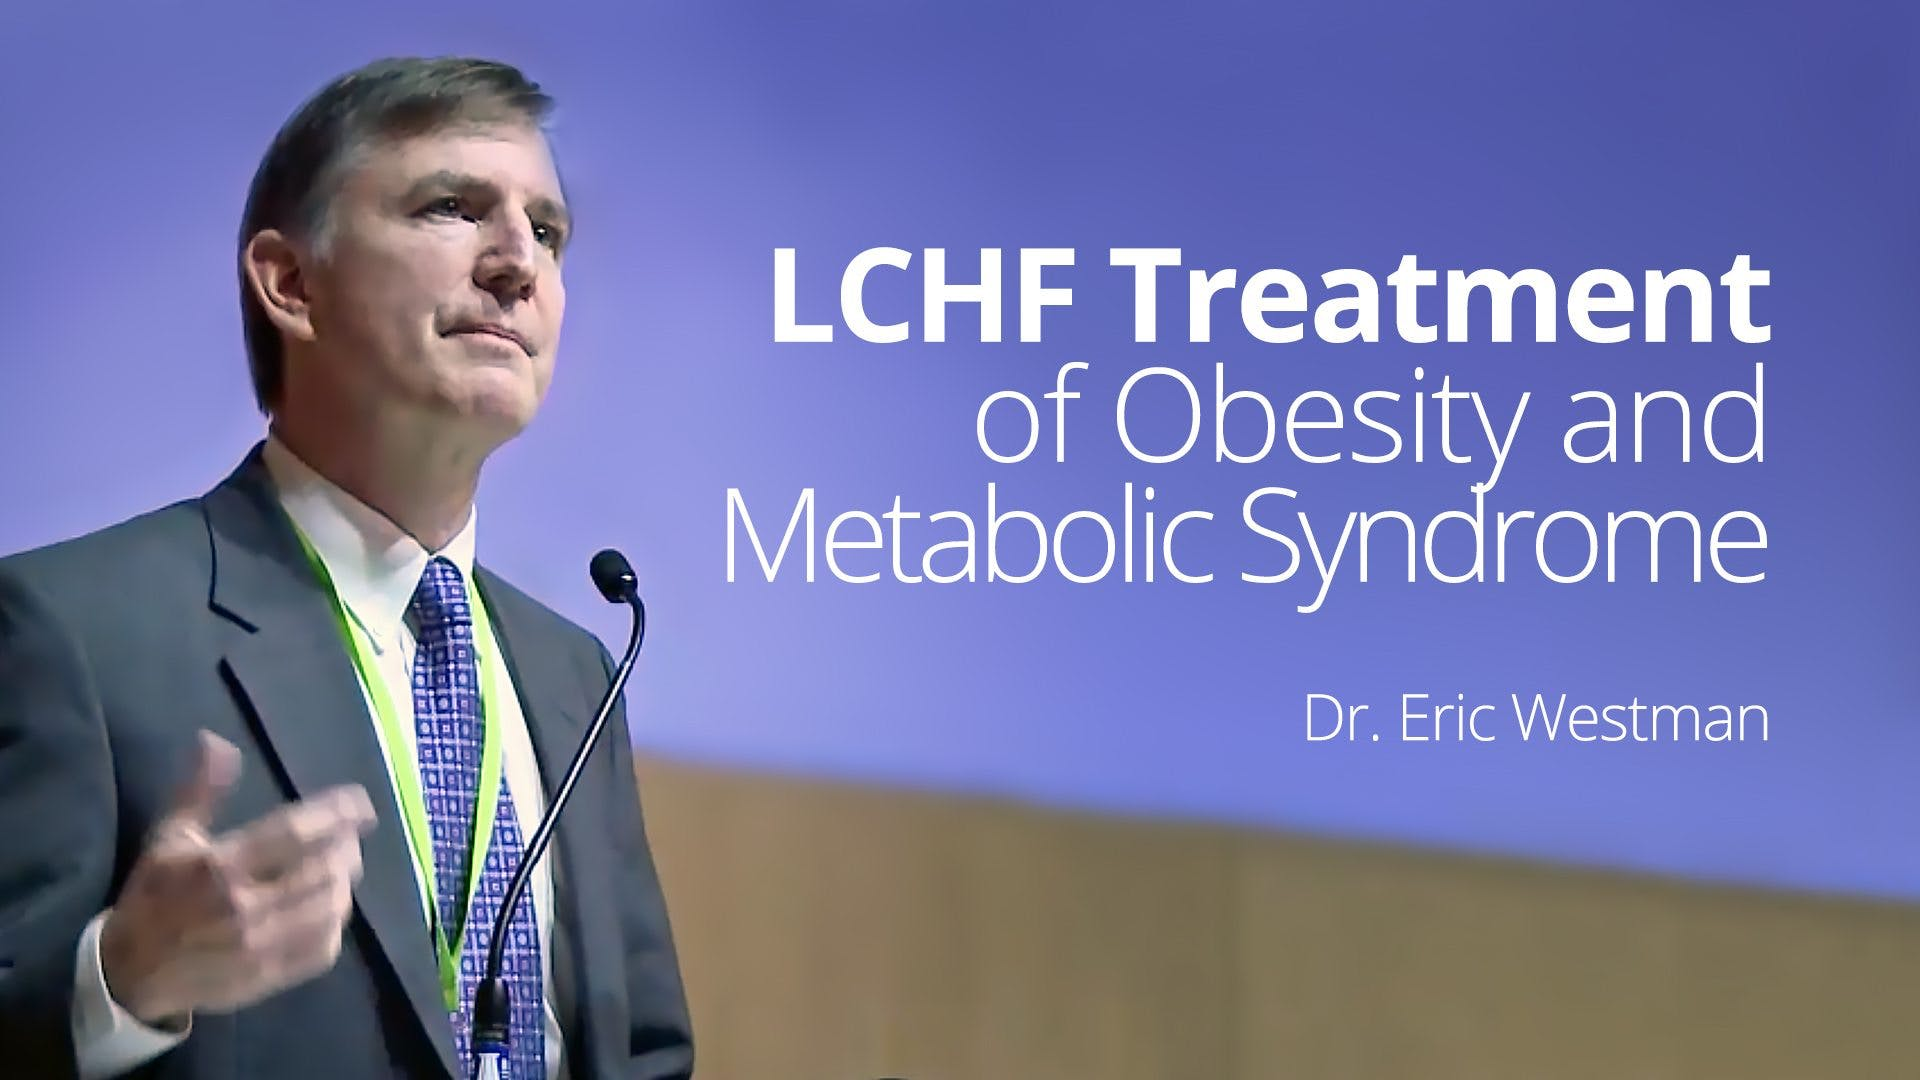 LCHF treatment of obesity and metabolic syndrome